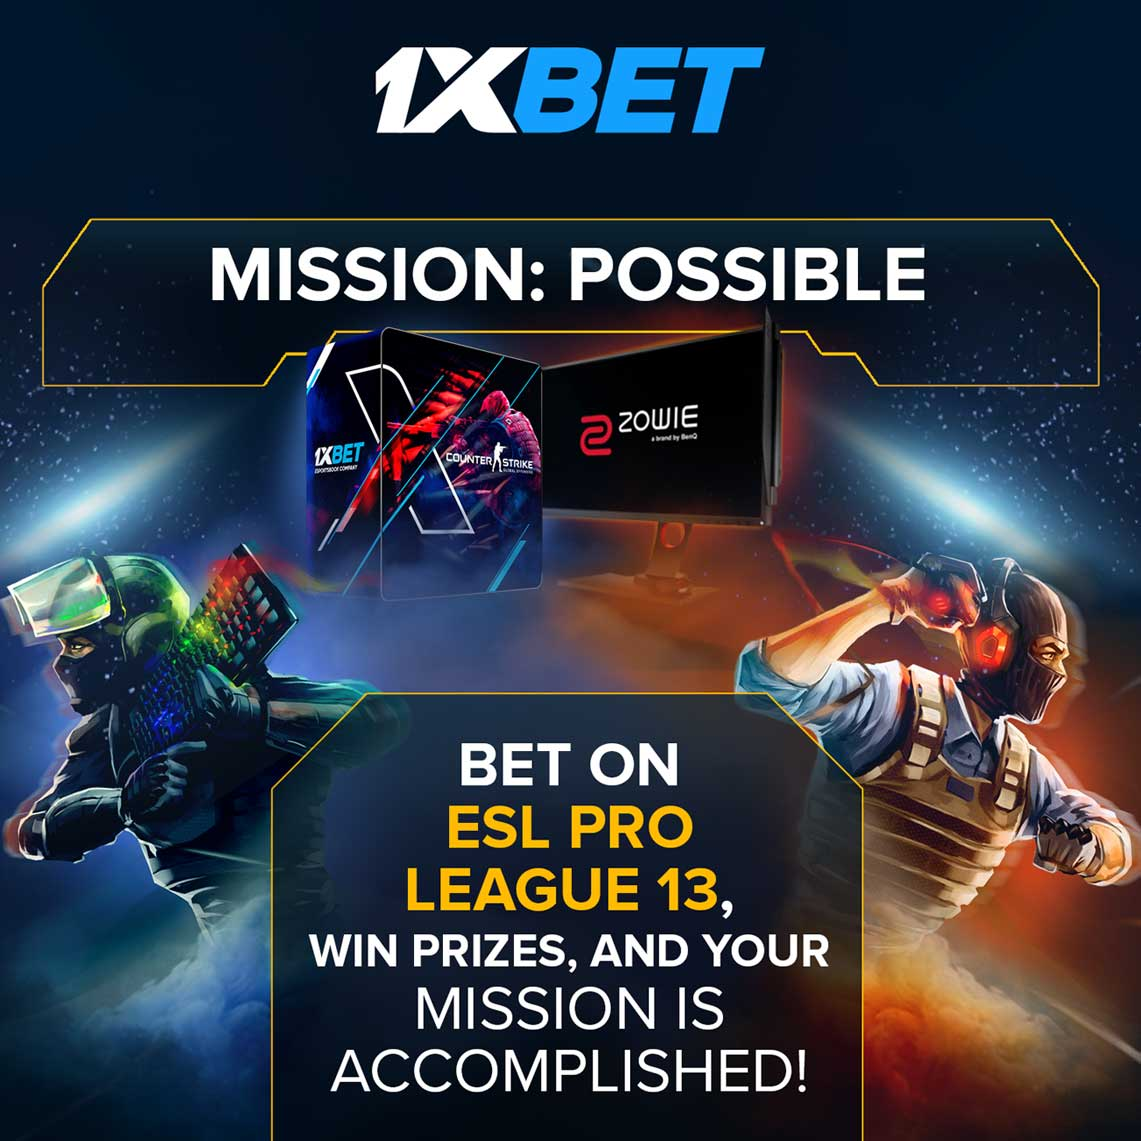 1xBet launches partnership campaign for ESL Pro League with top prizes